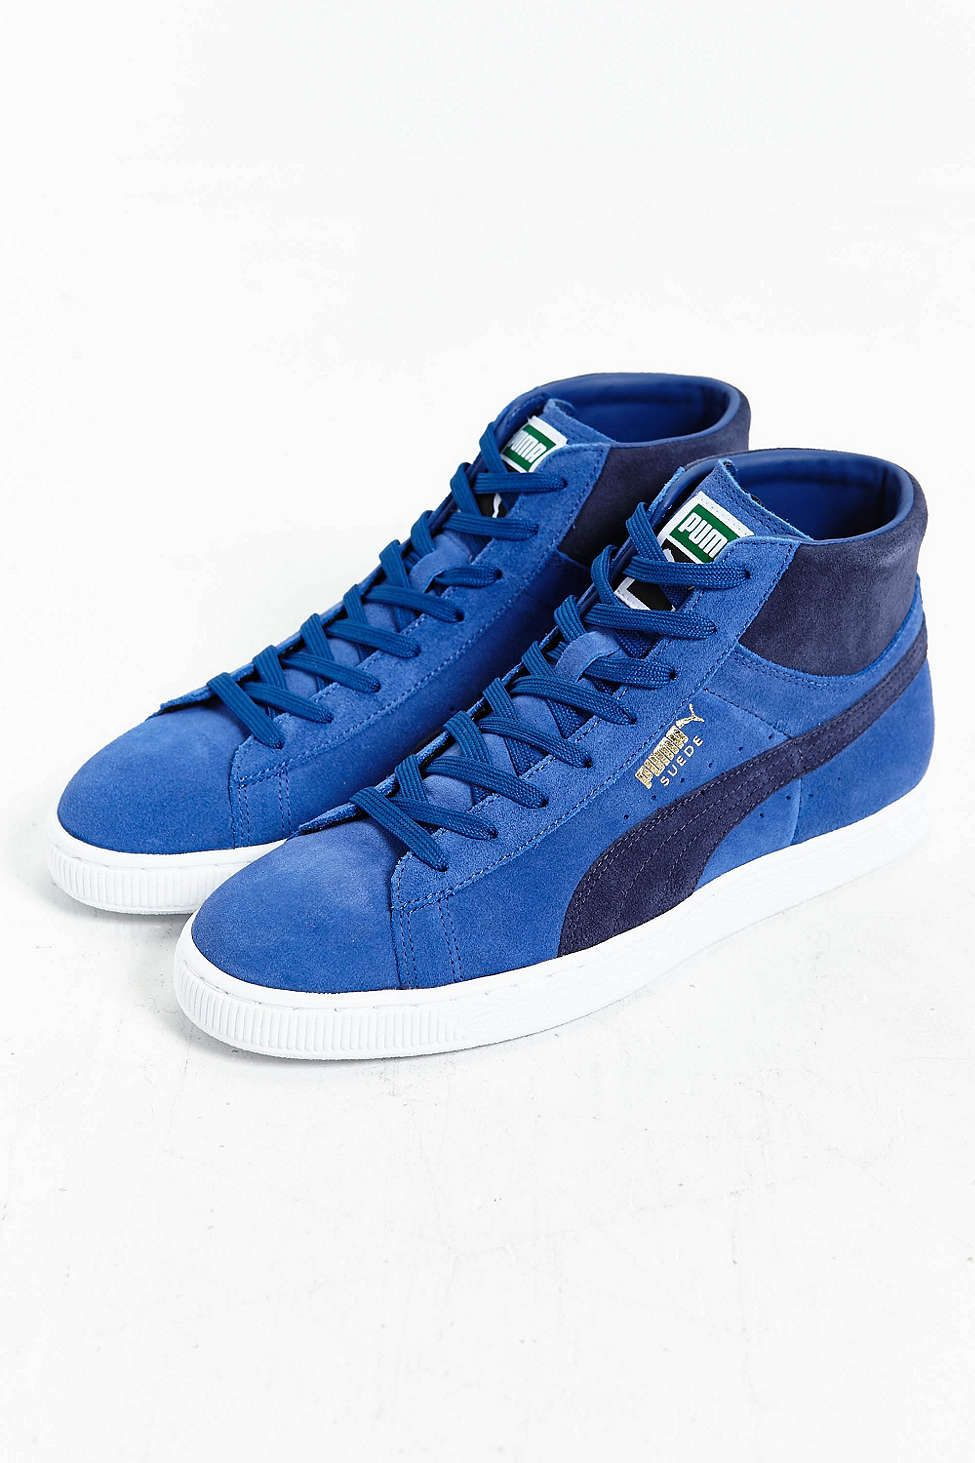 f1d87eb20fab Puma Suede Mid Classic Sneaker Navy Shoes